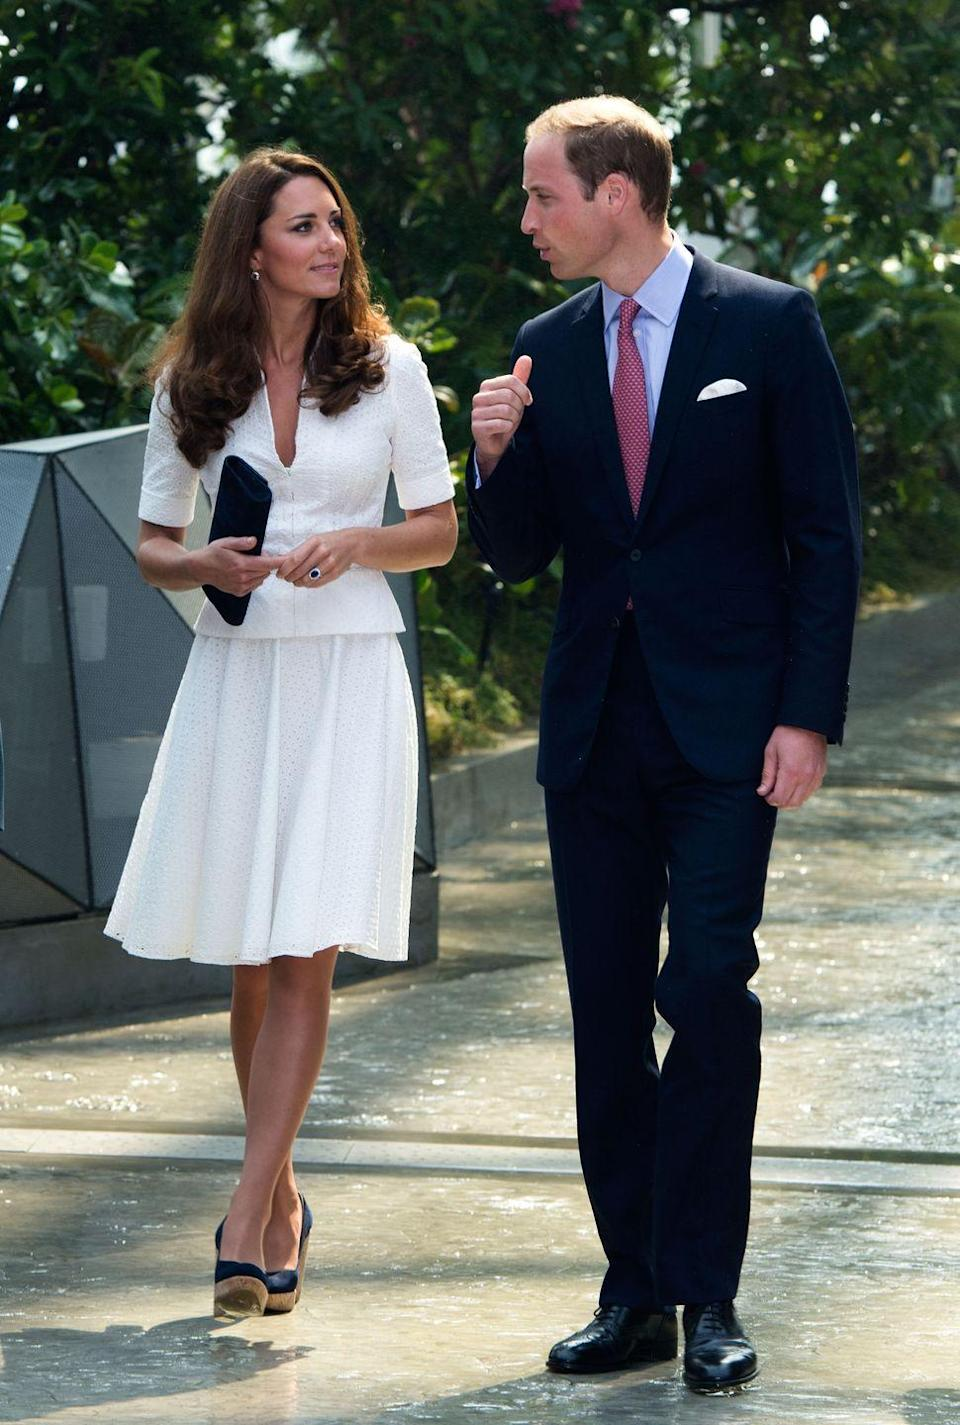 <p>Kate first wore this white broderie anglaise dress by Alexander McQueen while in Singapore for a Diamond Jubilee tour. Here, she and Will walked through the Gardens by the Bay. </p>